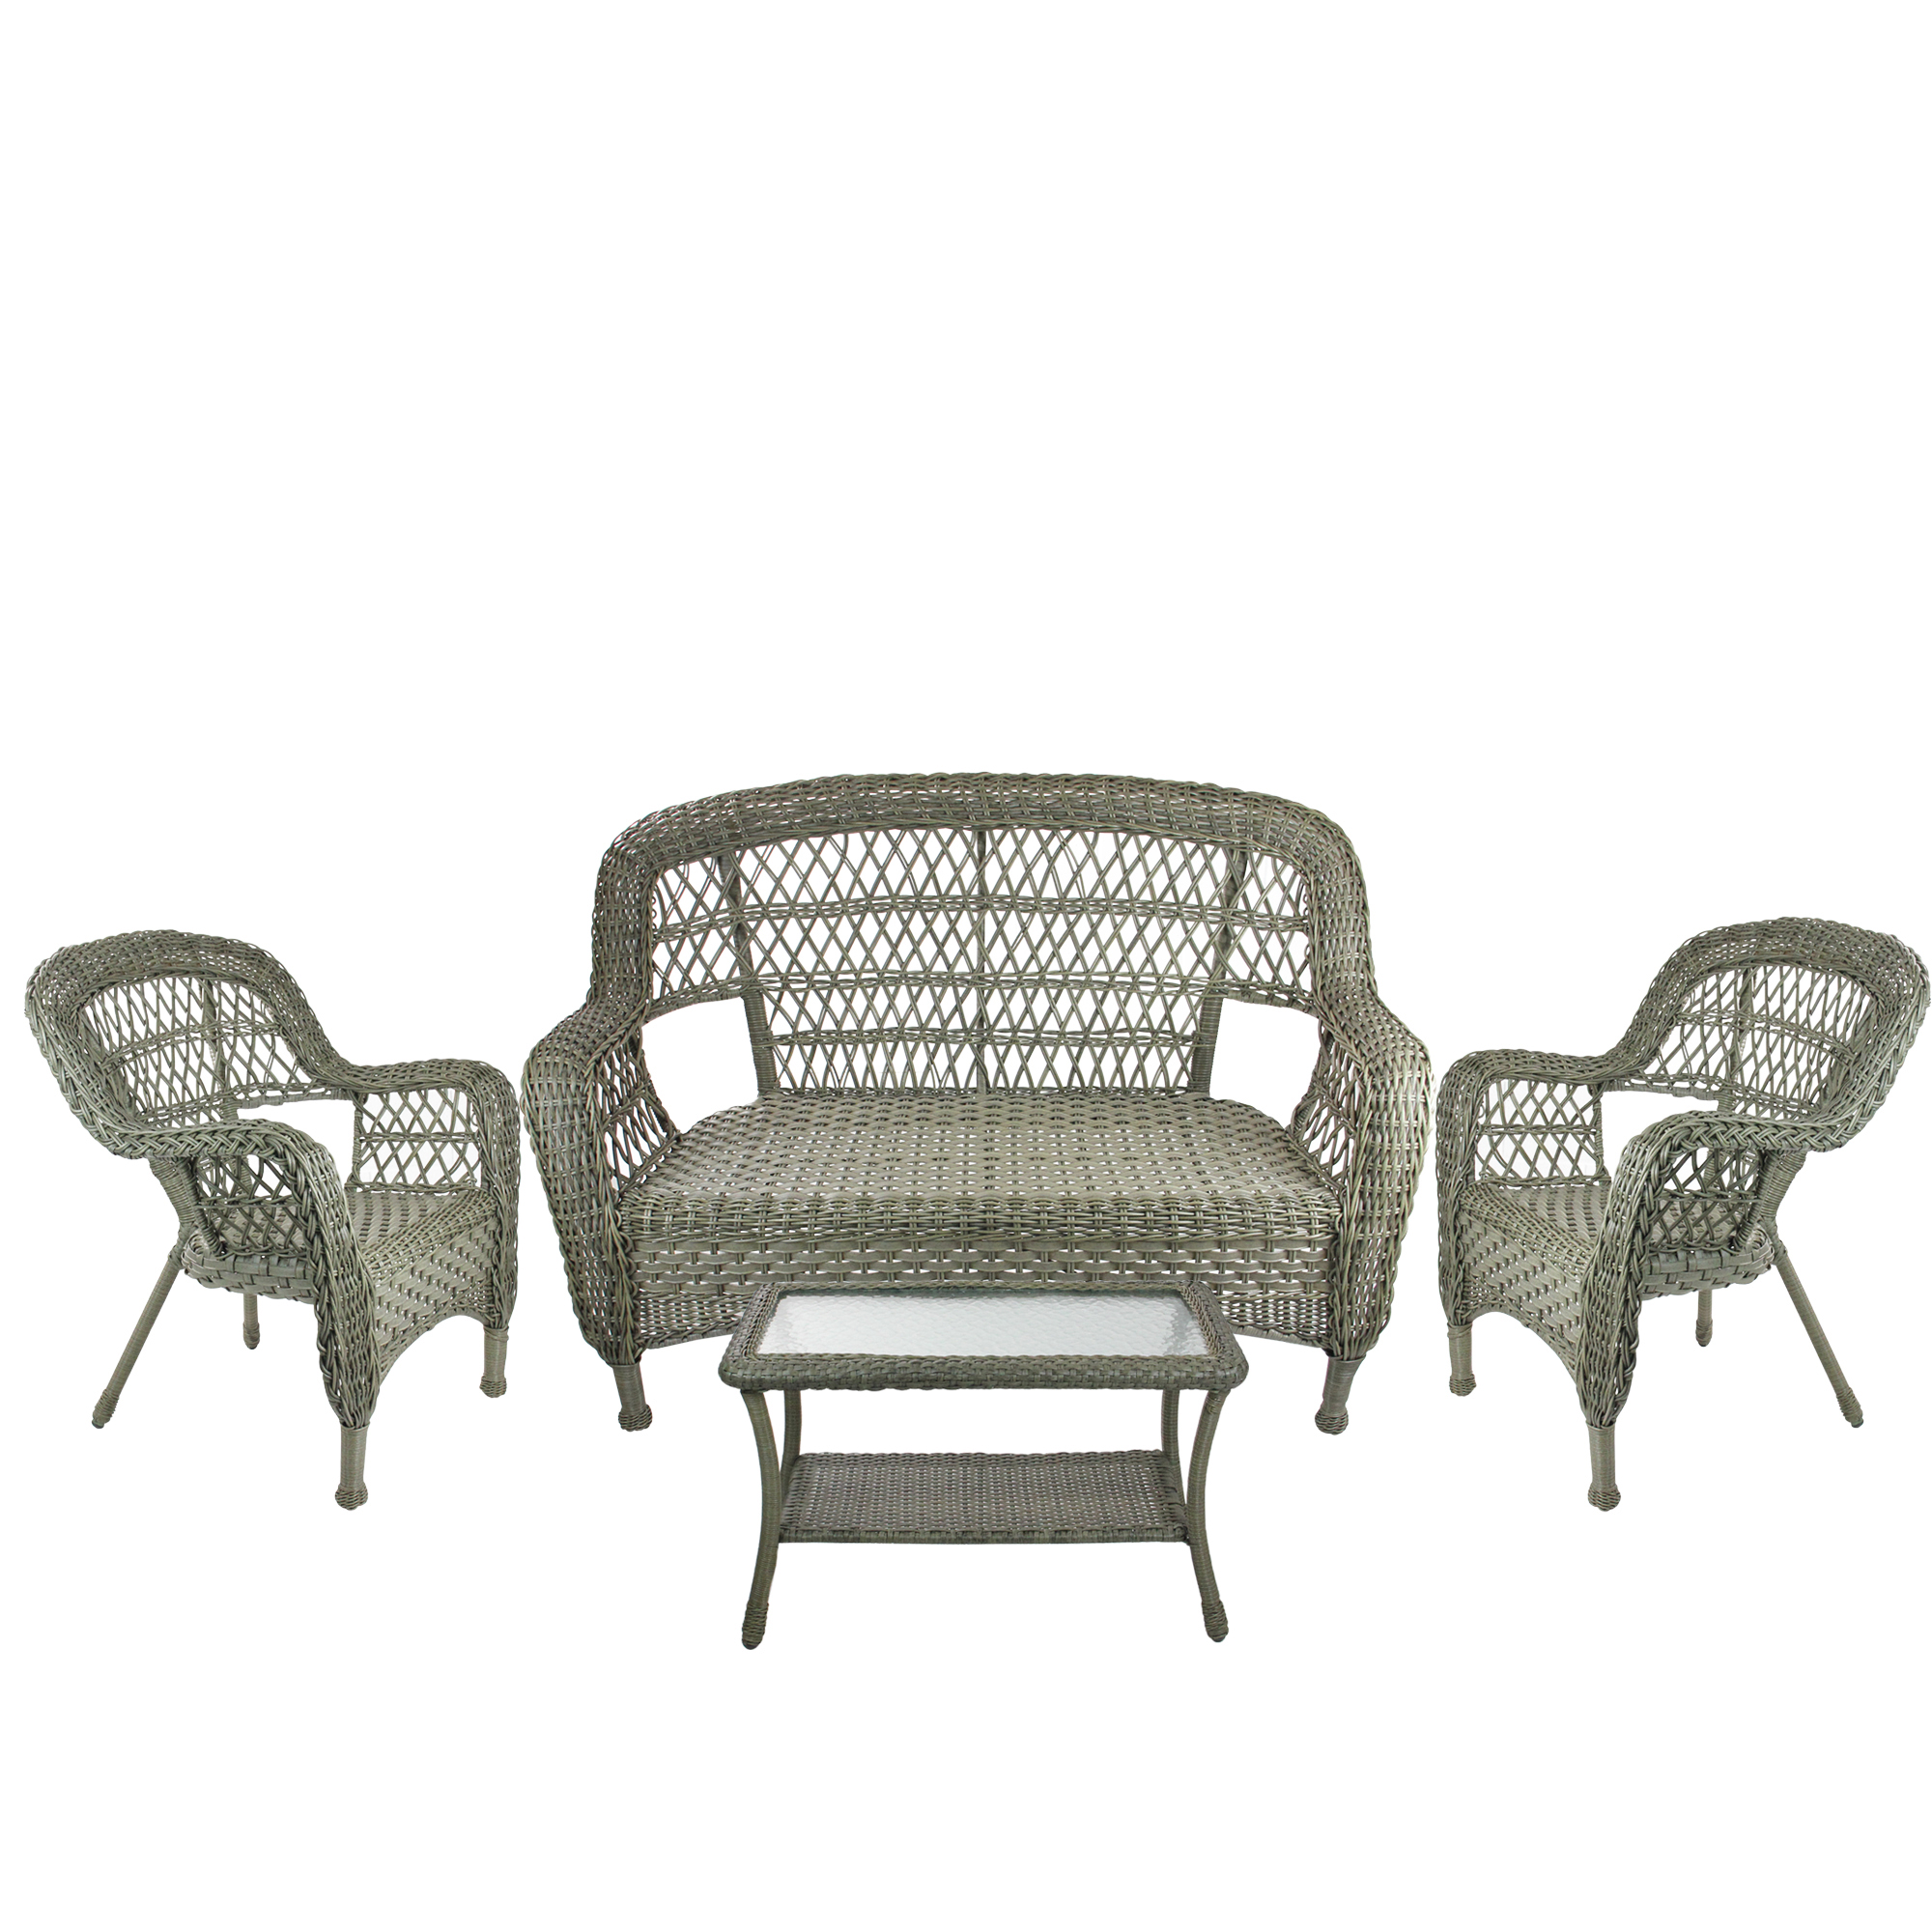 4-Piece Driftwood Green Steel Resin Outdoor Patio Furniture Set - Loveseat, 2 Chairs and Table